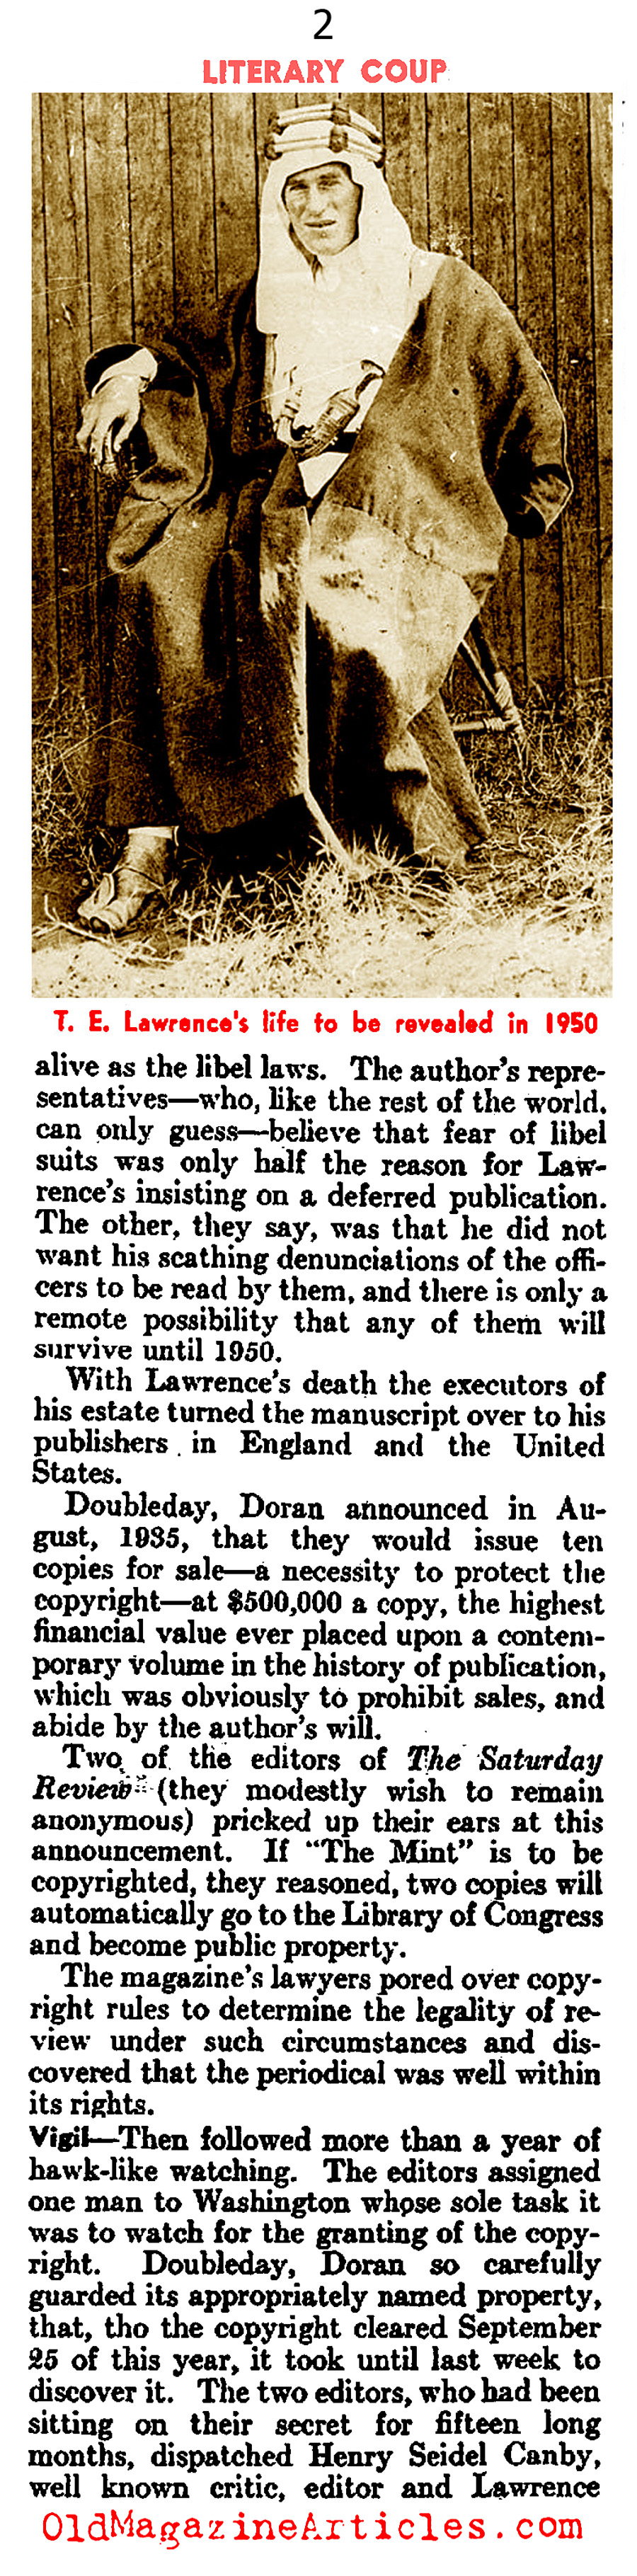 T.E. Lawrence and the Literary Coup of 1935 (Literary Digest, 1935)